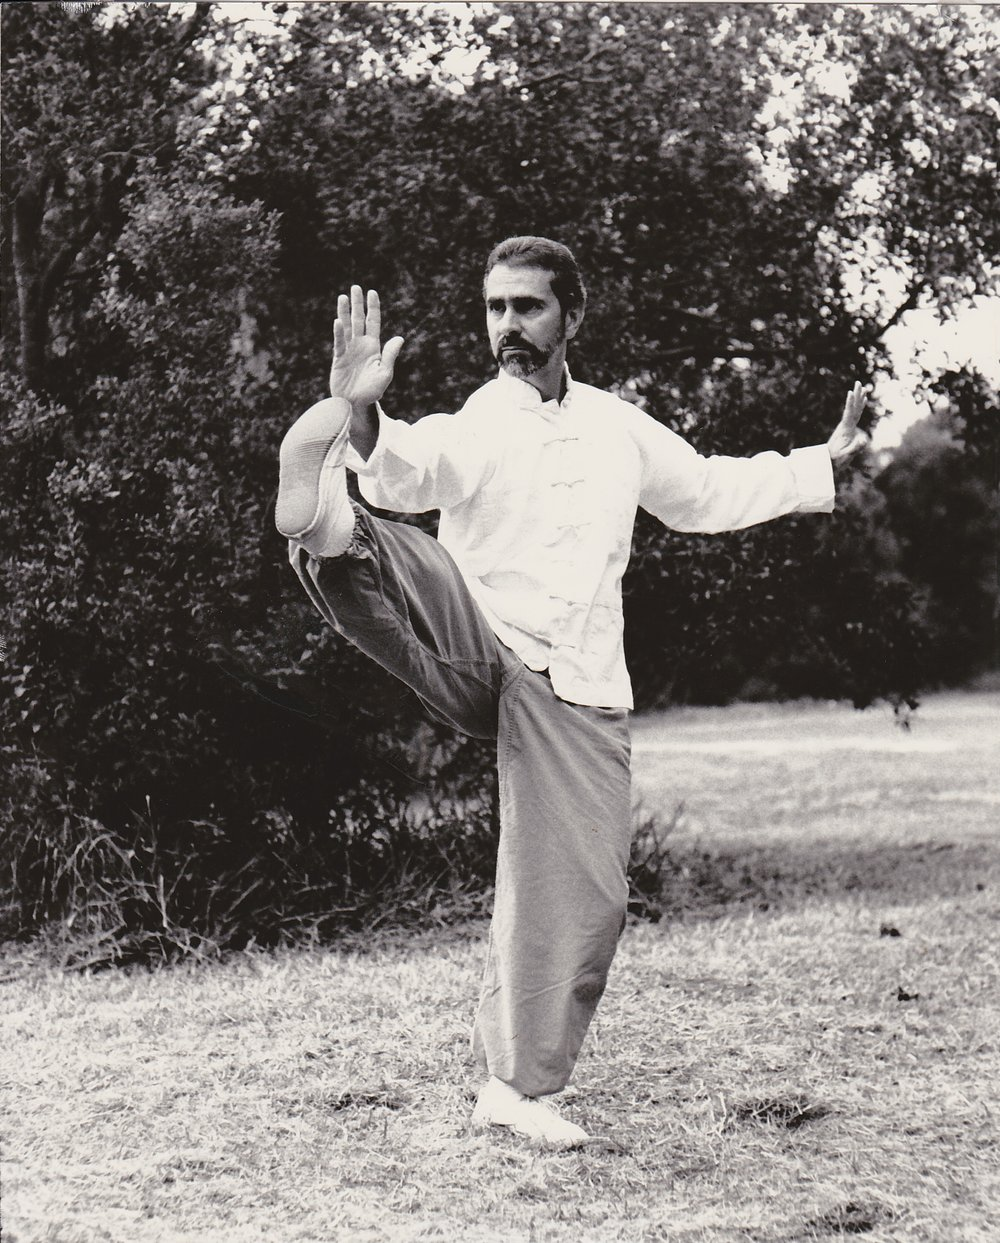 Sifu Paolillo performing Chen Tai Chi Ch'uan, early 90s